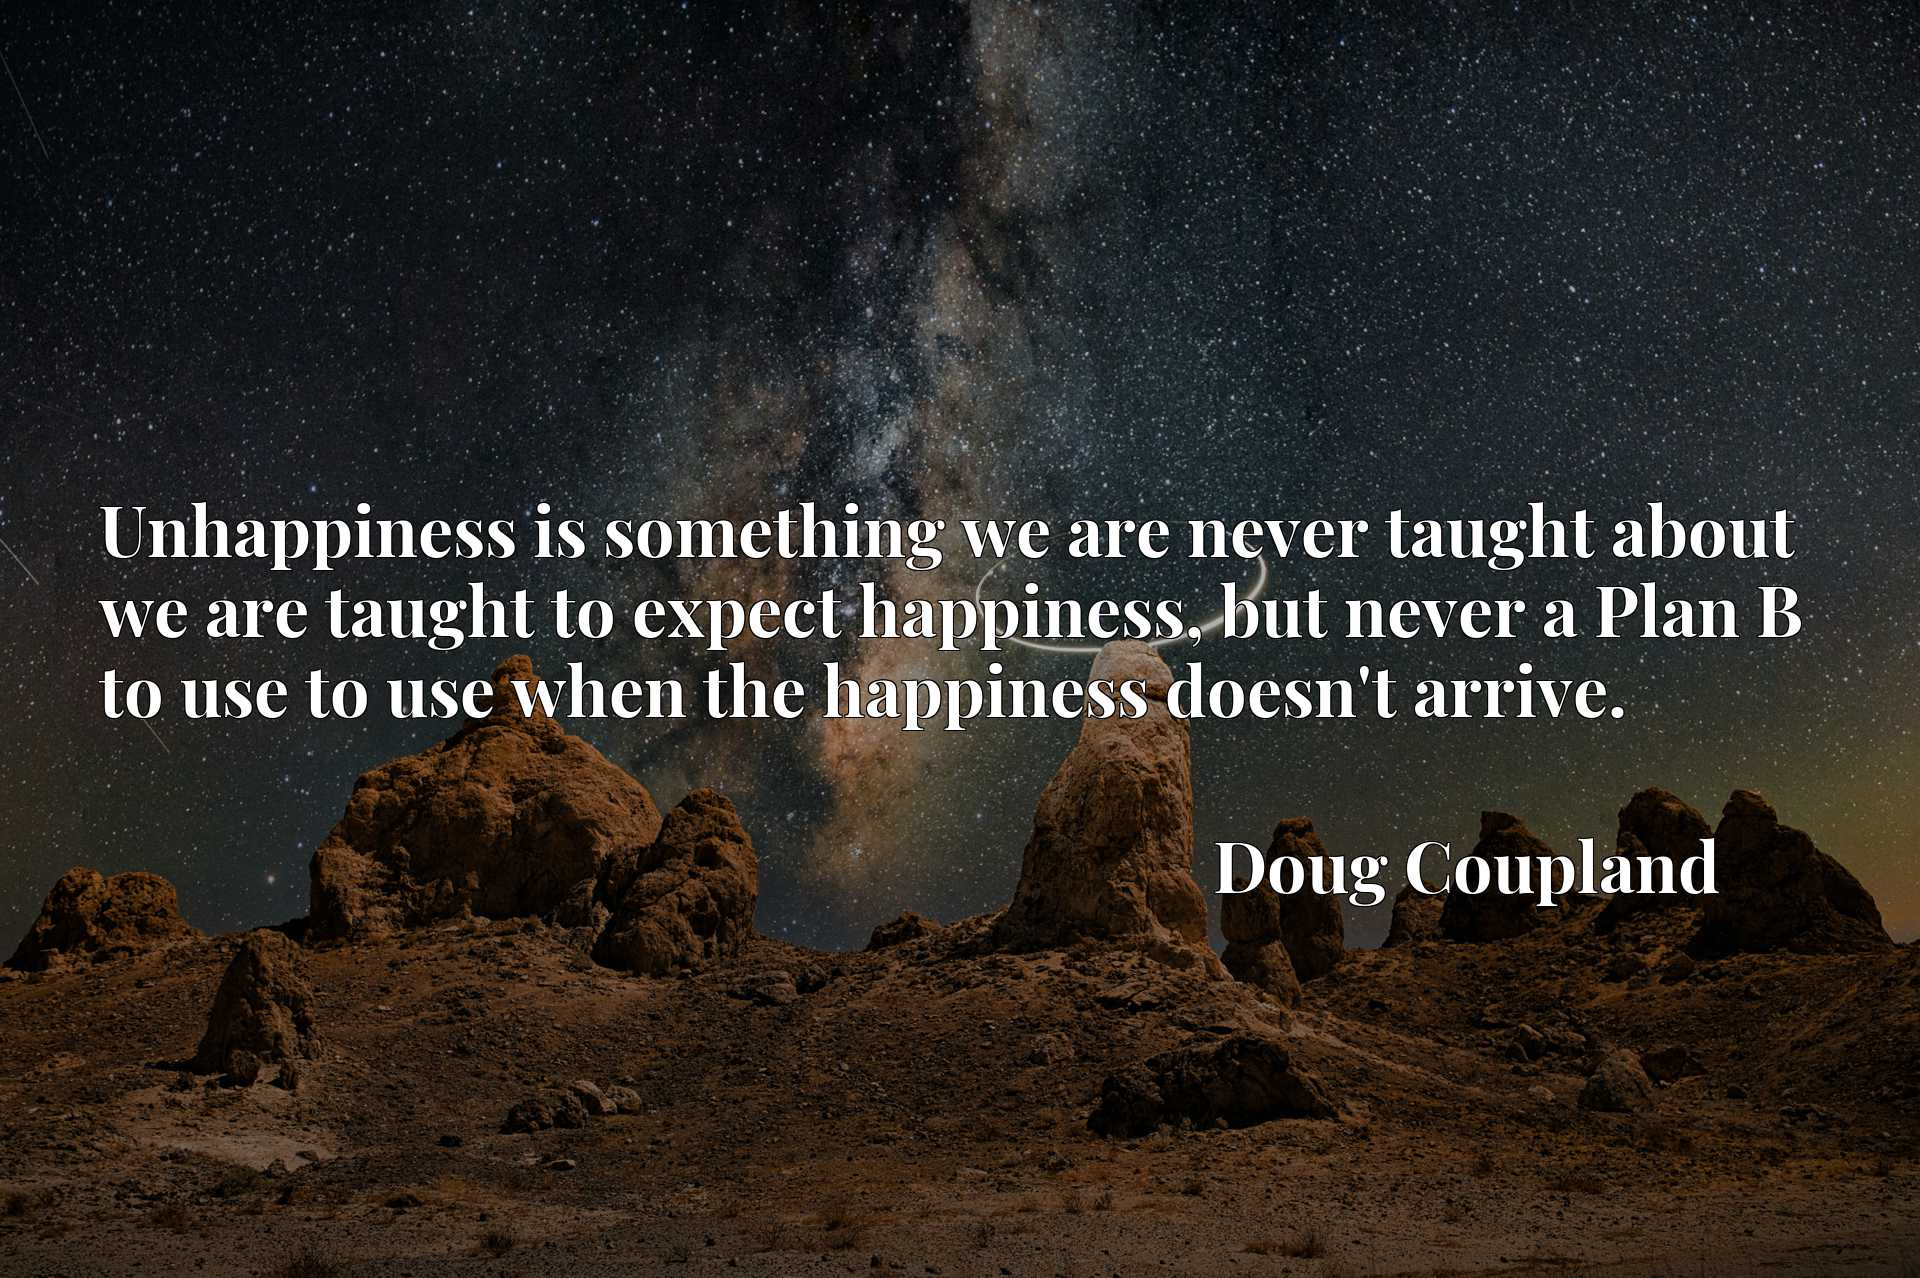 Unhappiness is something we are never taught about we are taught to expect happiness, but never a Plan B to use to use when the happiness doesn't arrive.